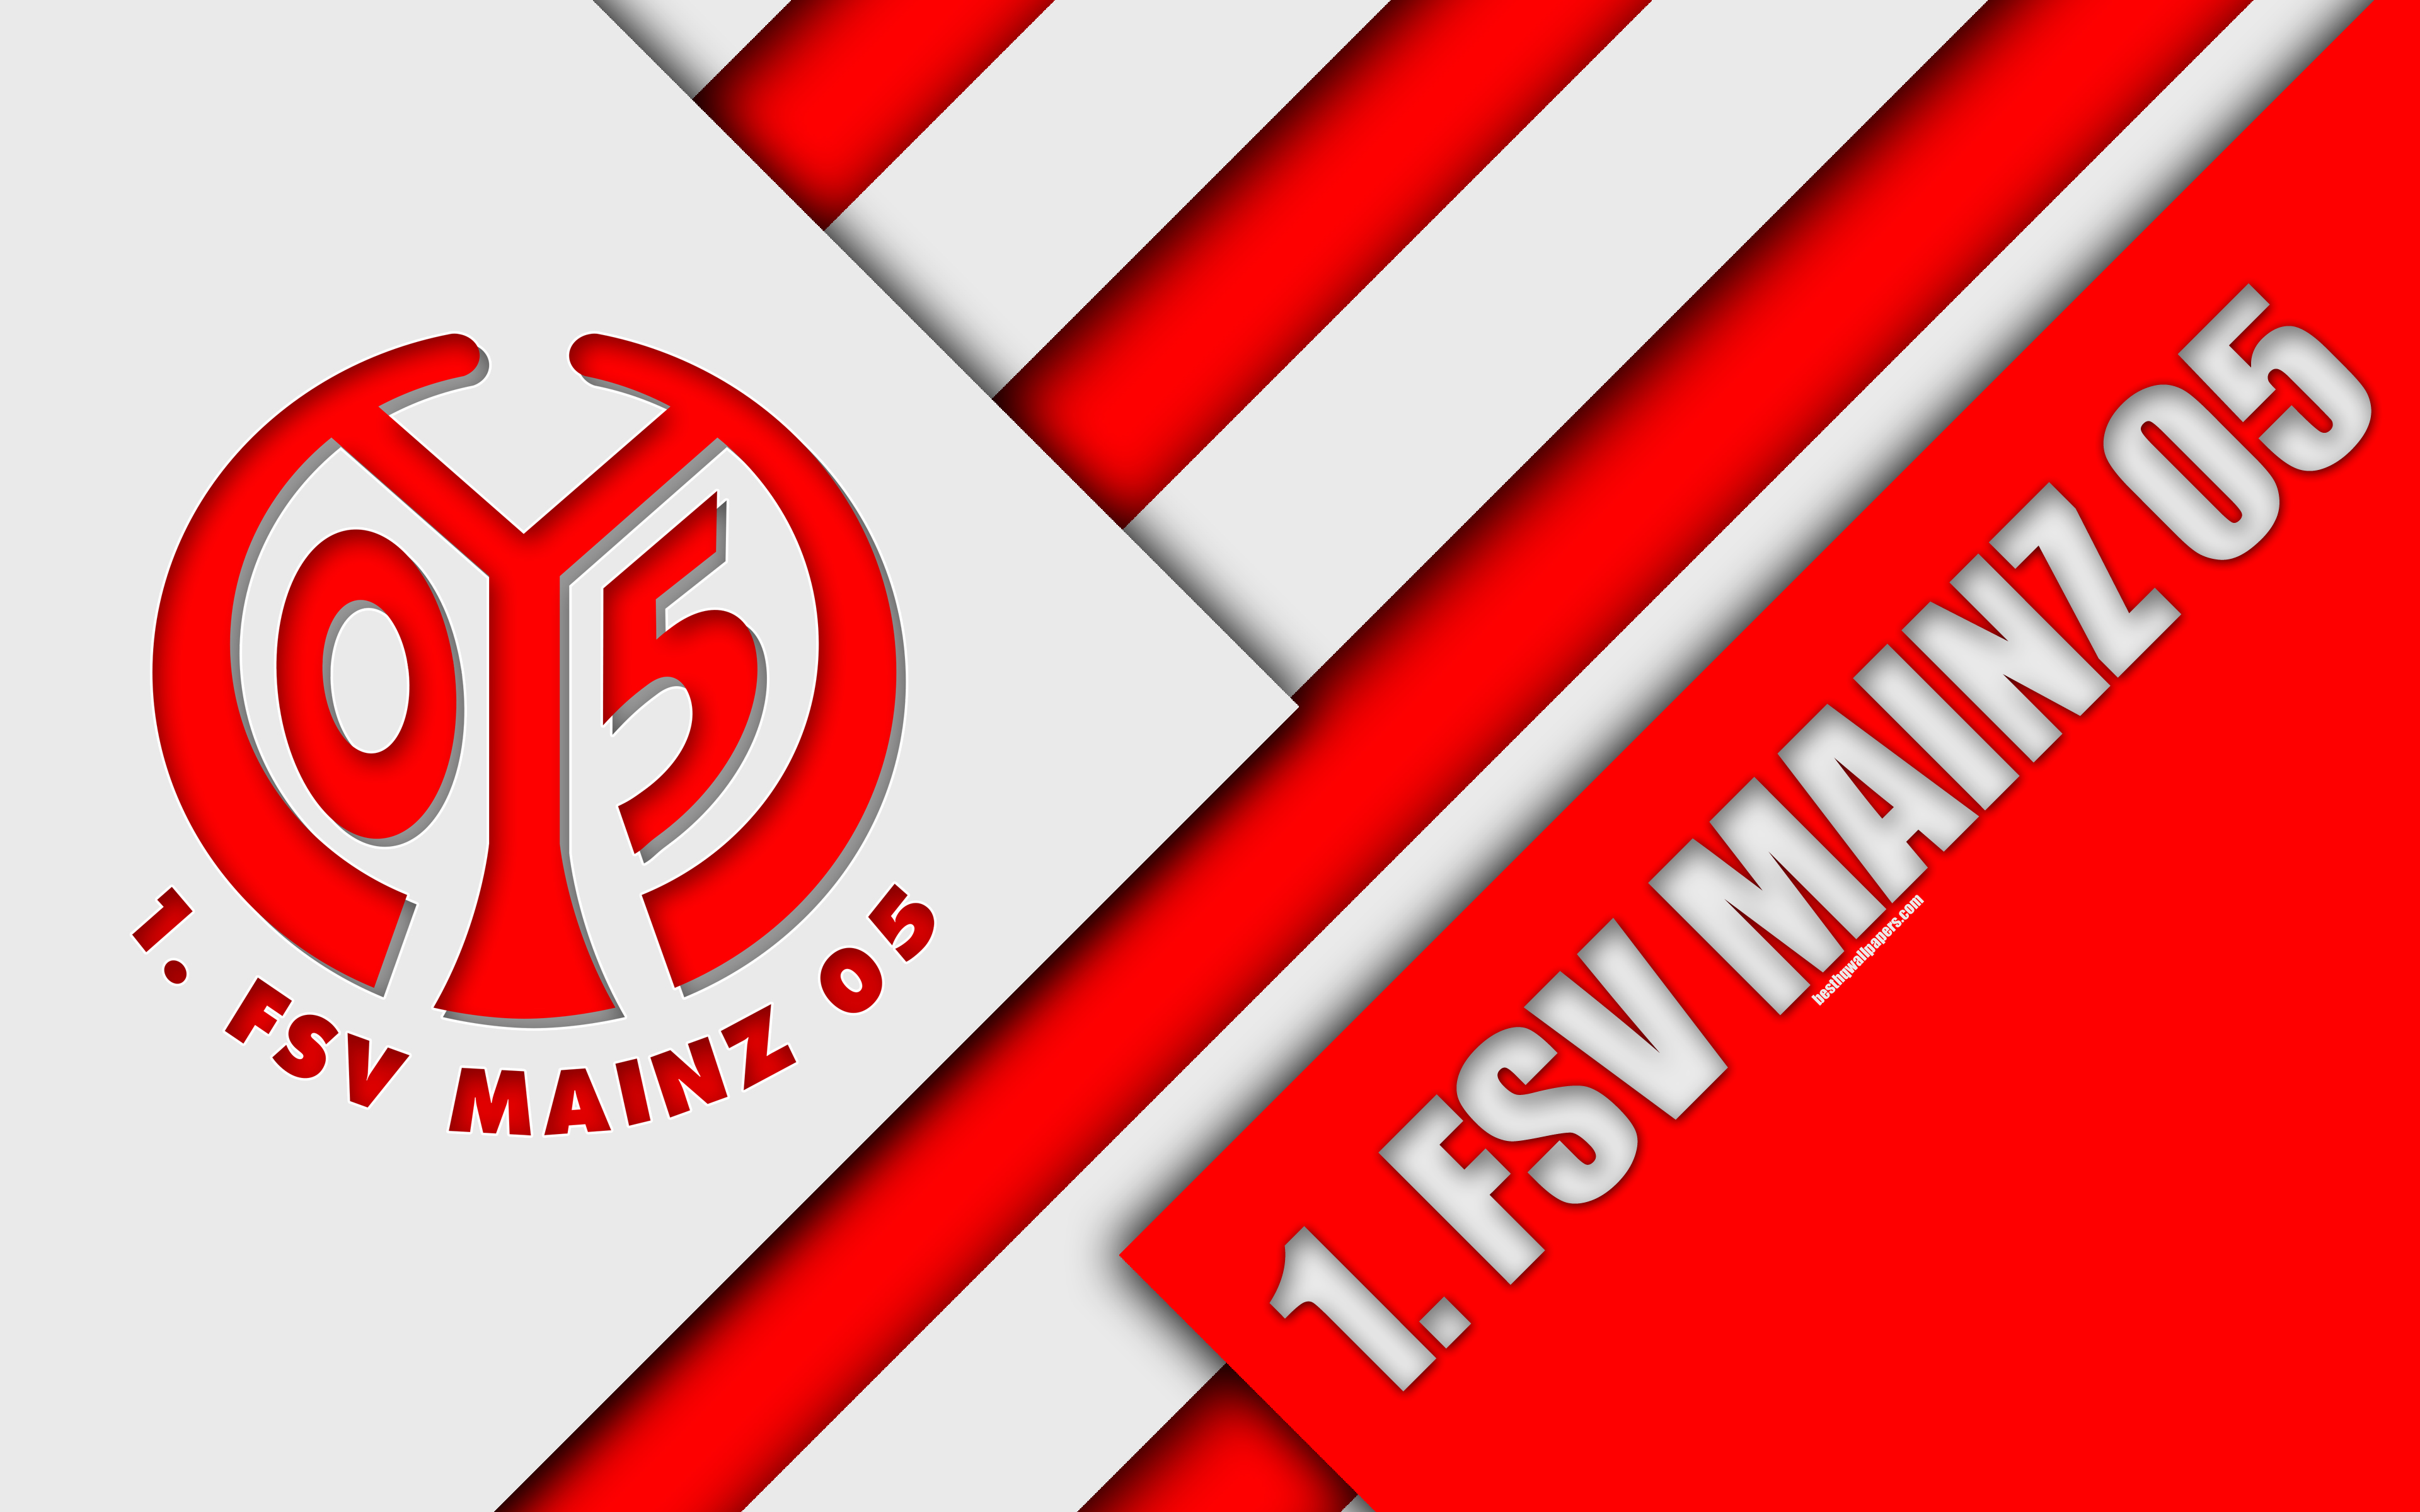 Download wallpapers FSV Mainz 05, 4k, red white abstraction ...